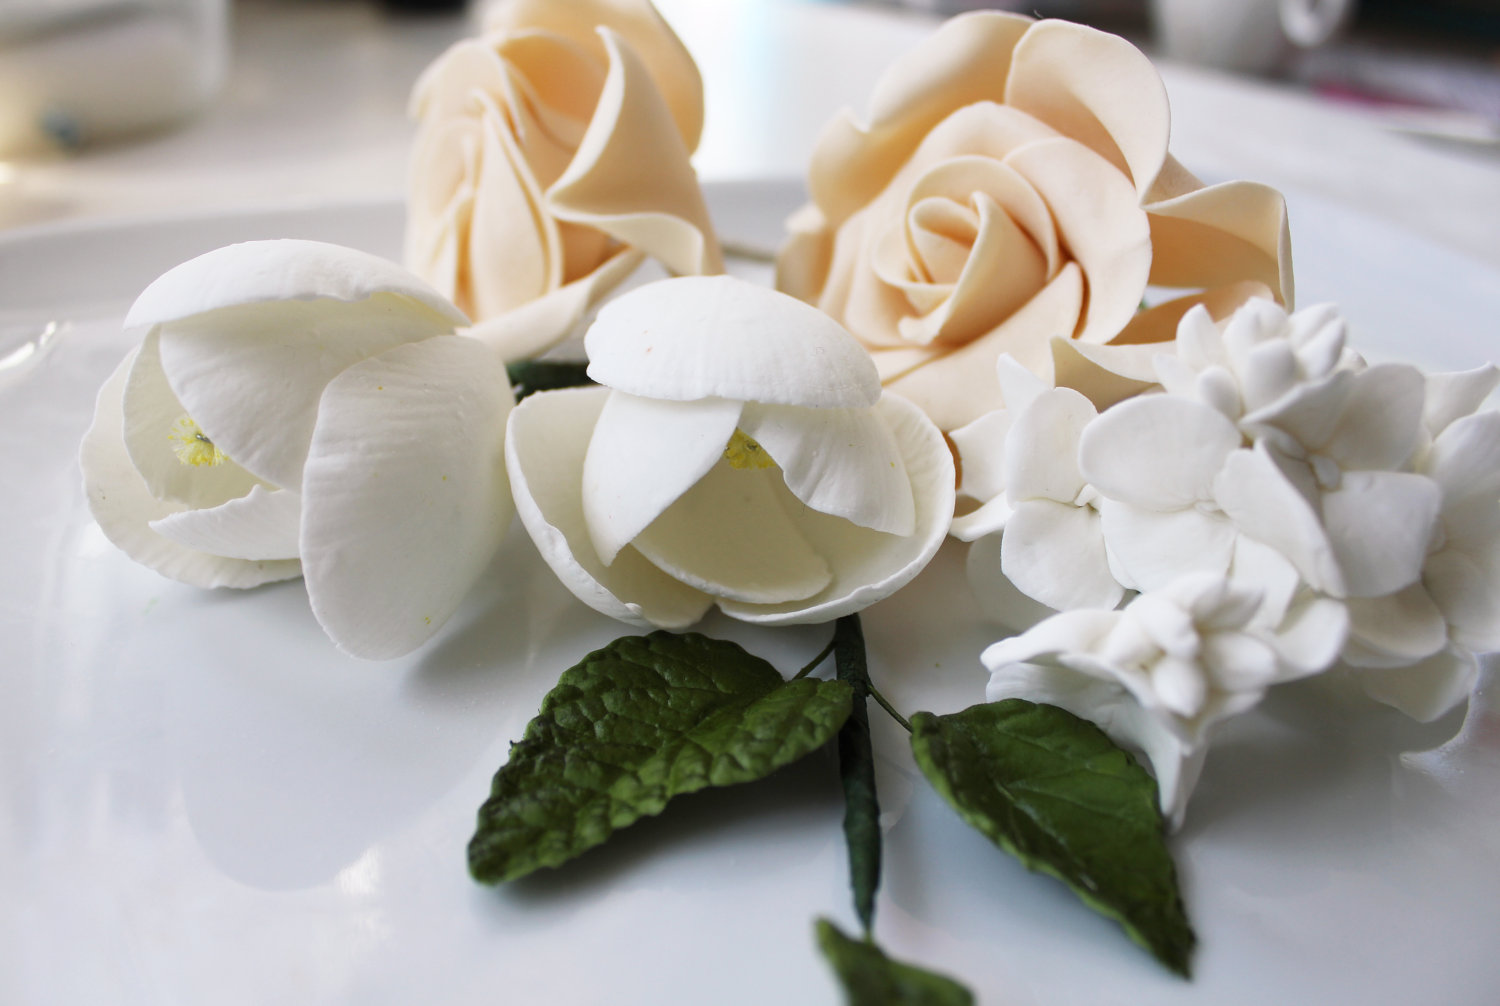 Fondant-wedding-finds-to-add-sweetness-to-handmade-weddings-ivory-beige-flowers.original